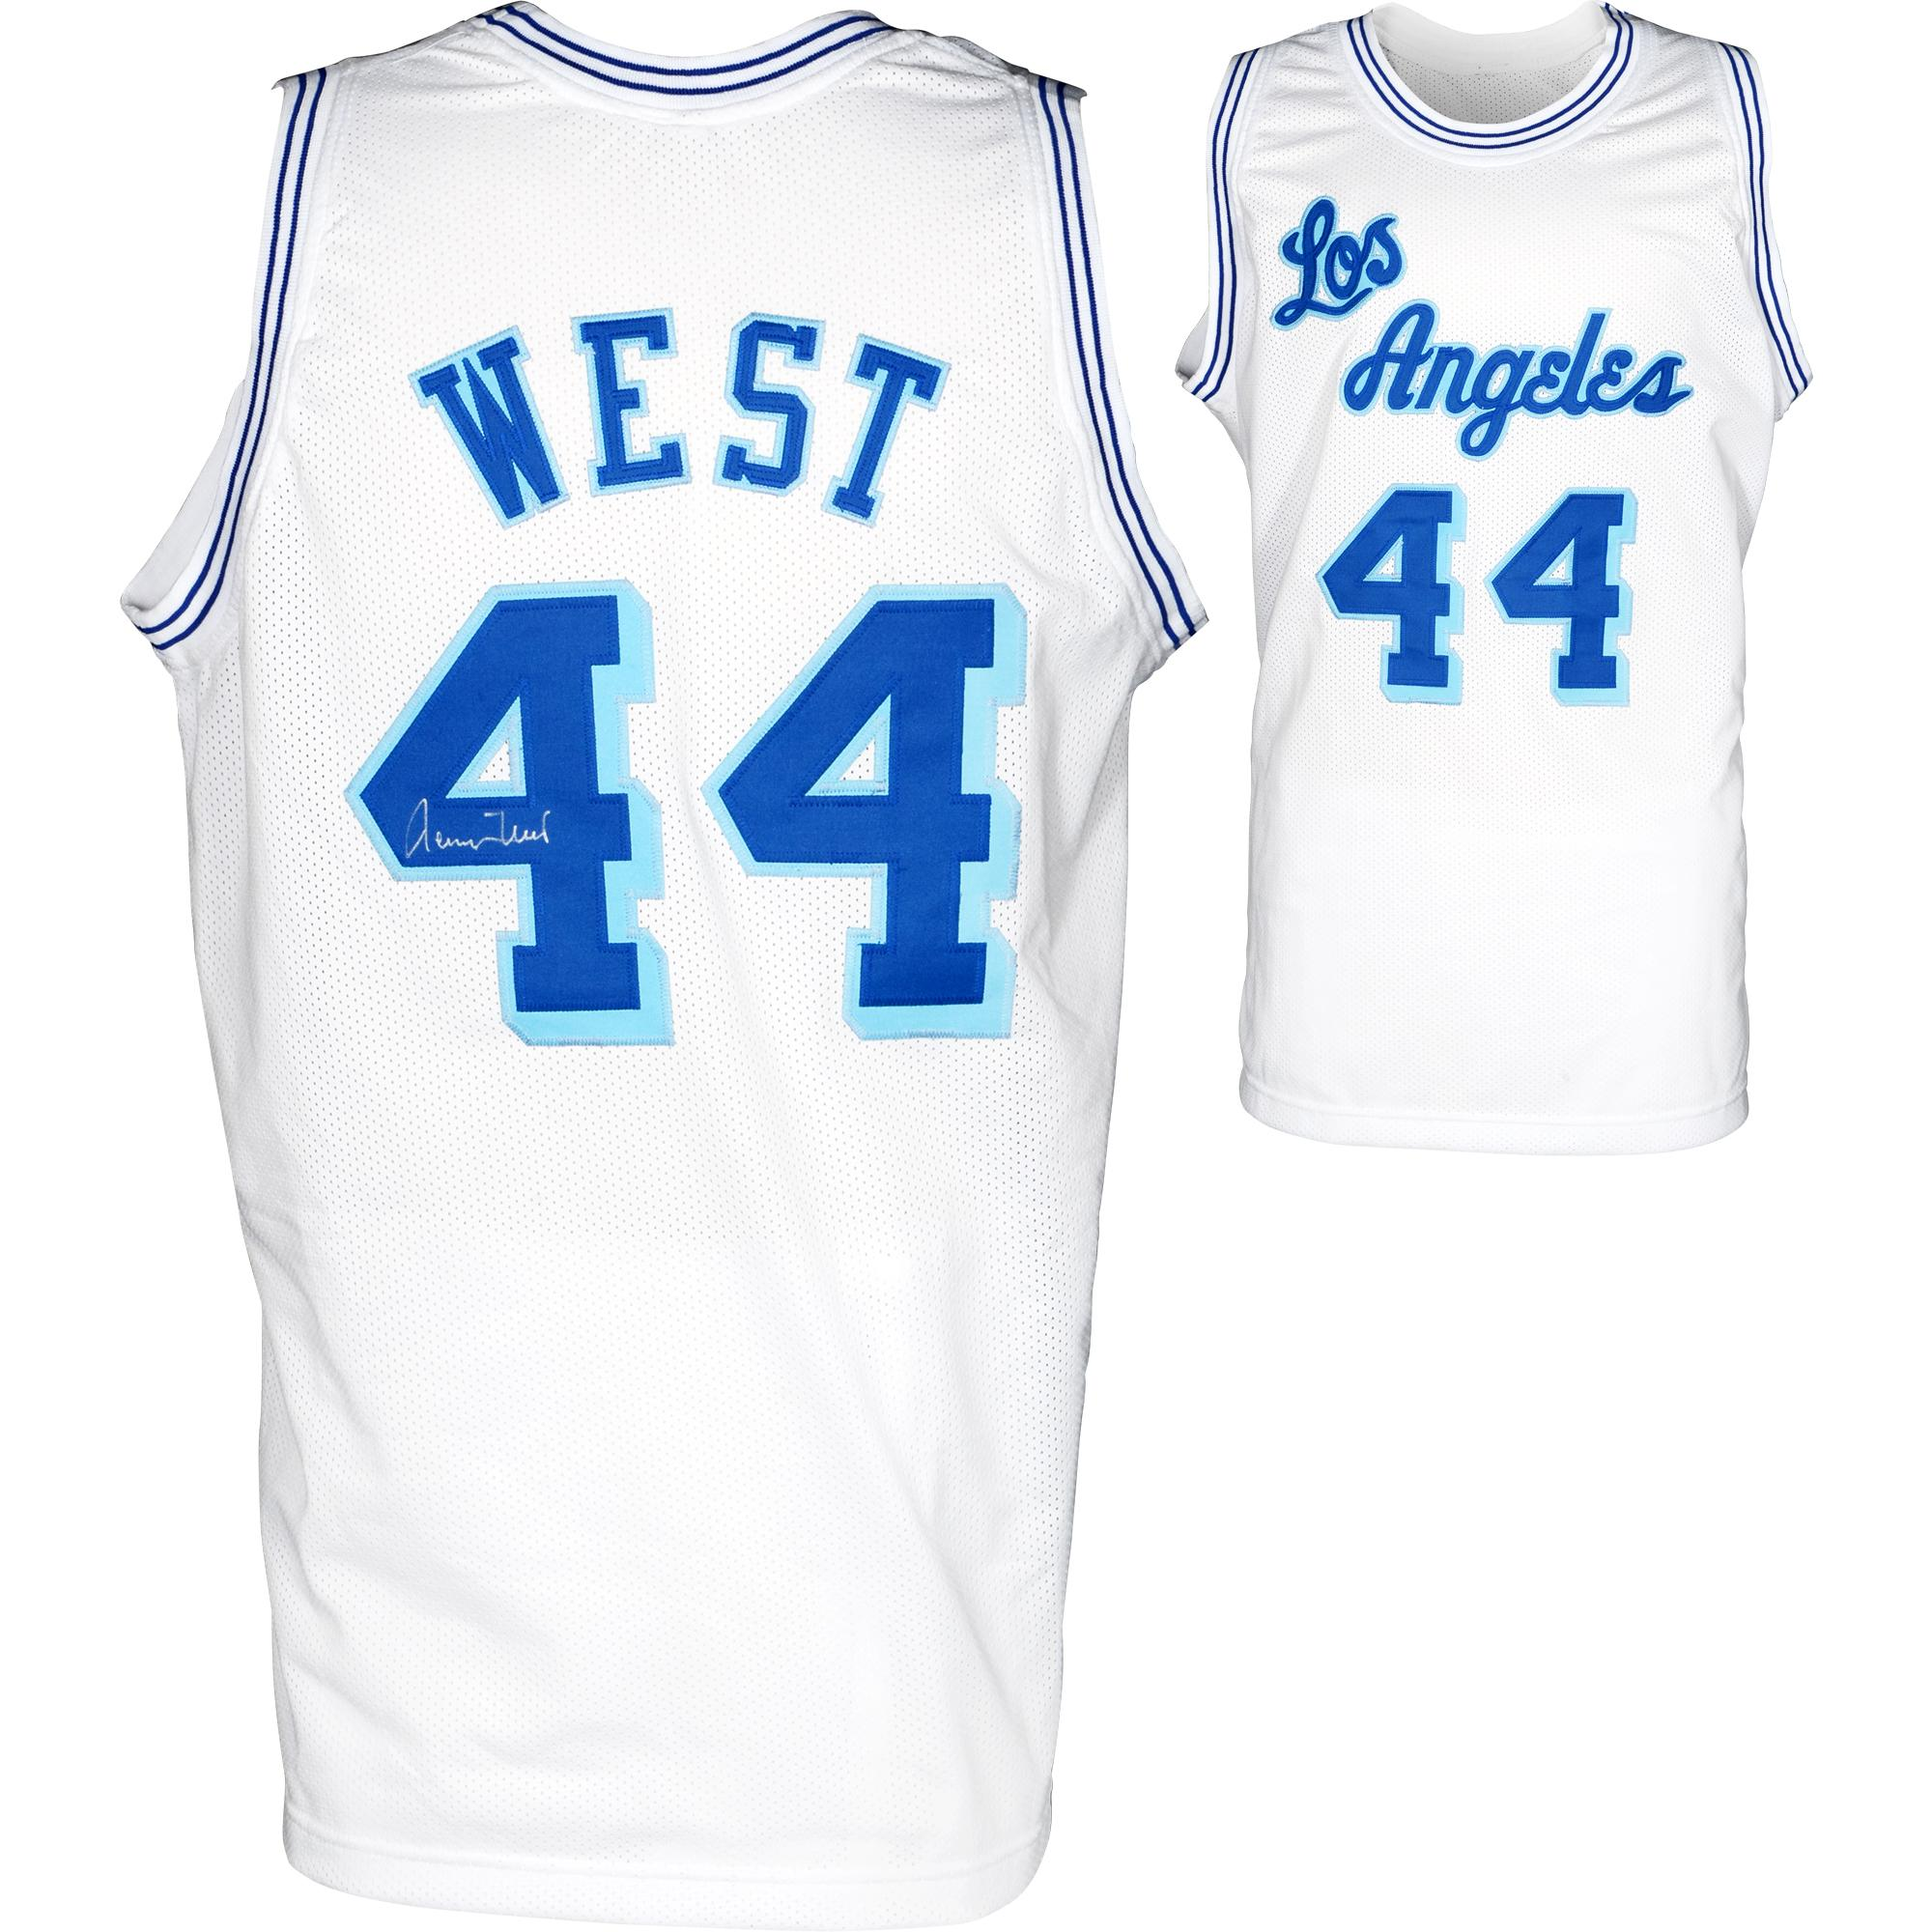 Jerry West Los Angeles Lakers Autographed Jersey